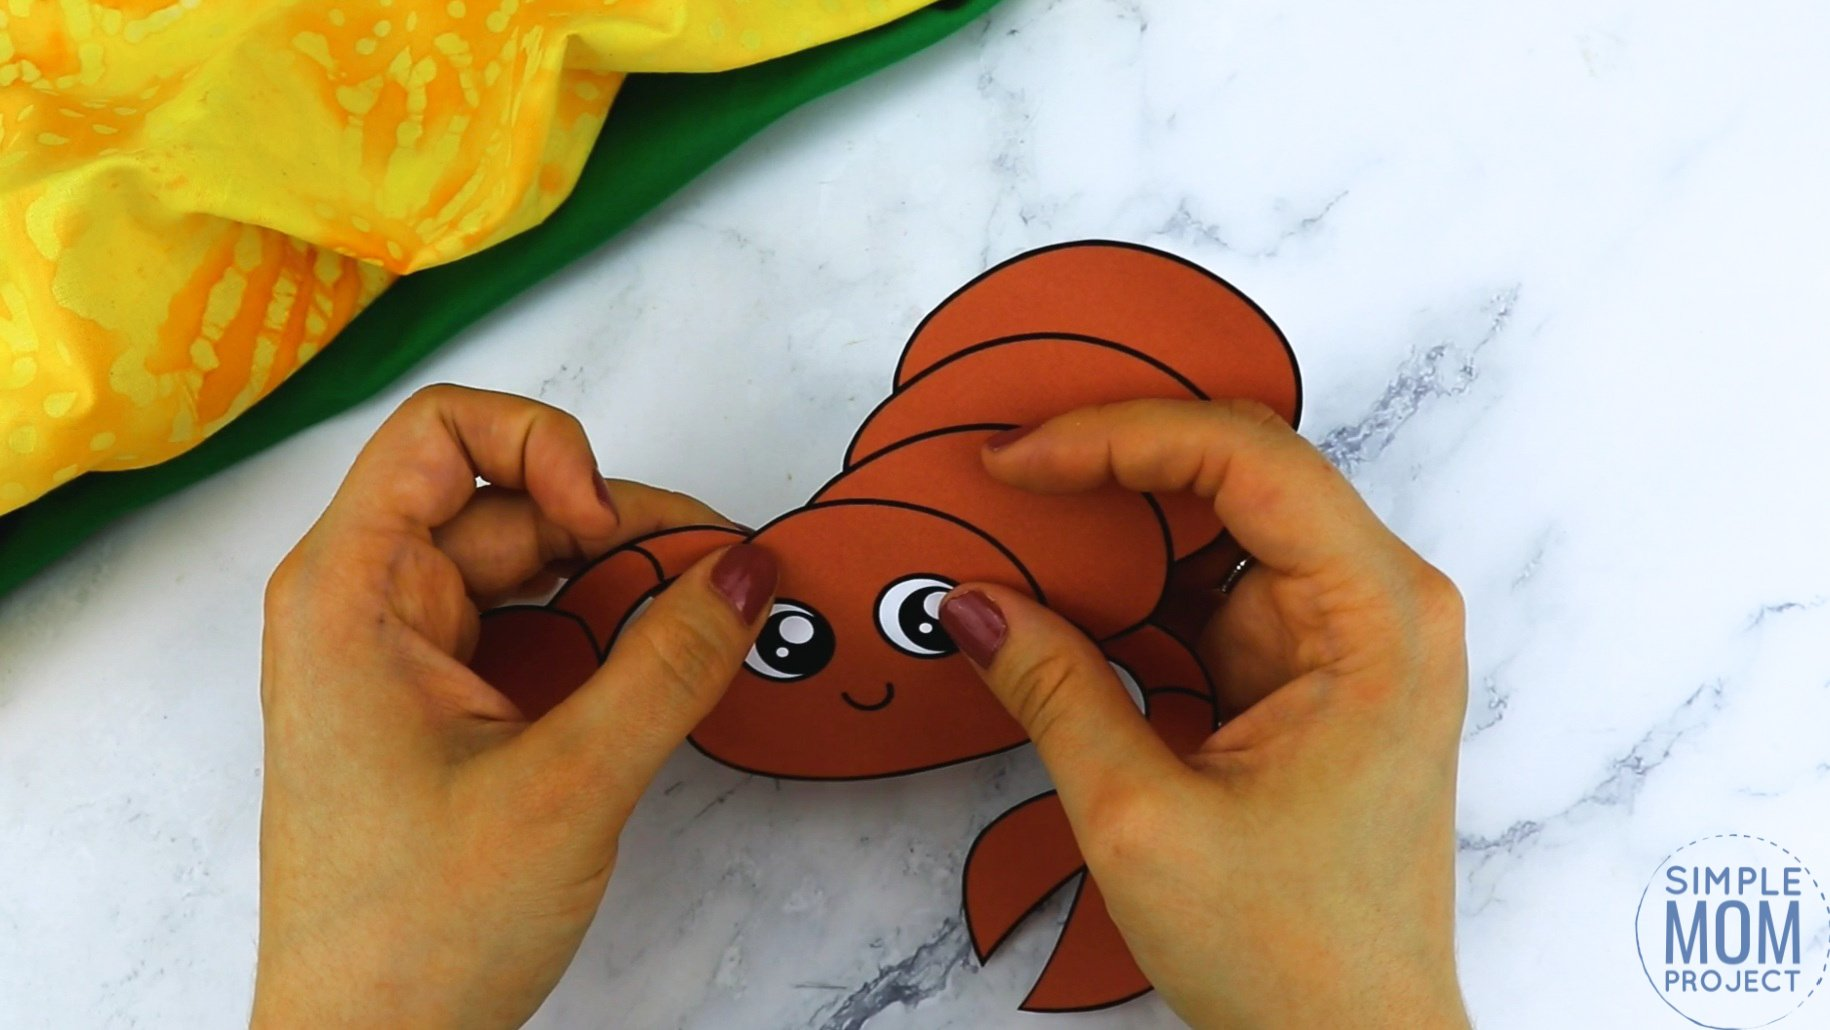 Free Printable Scorpion Craft for Kids, preschoolers and toddlers